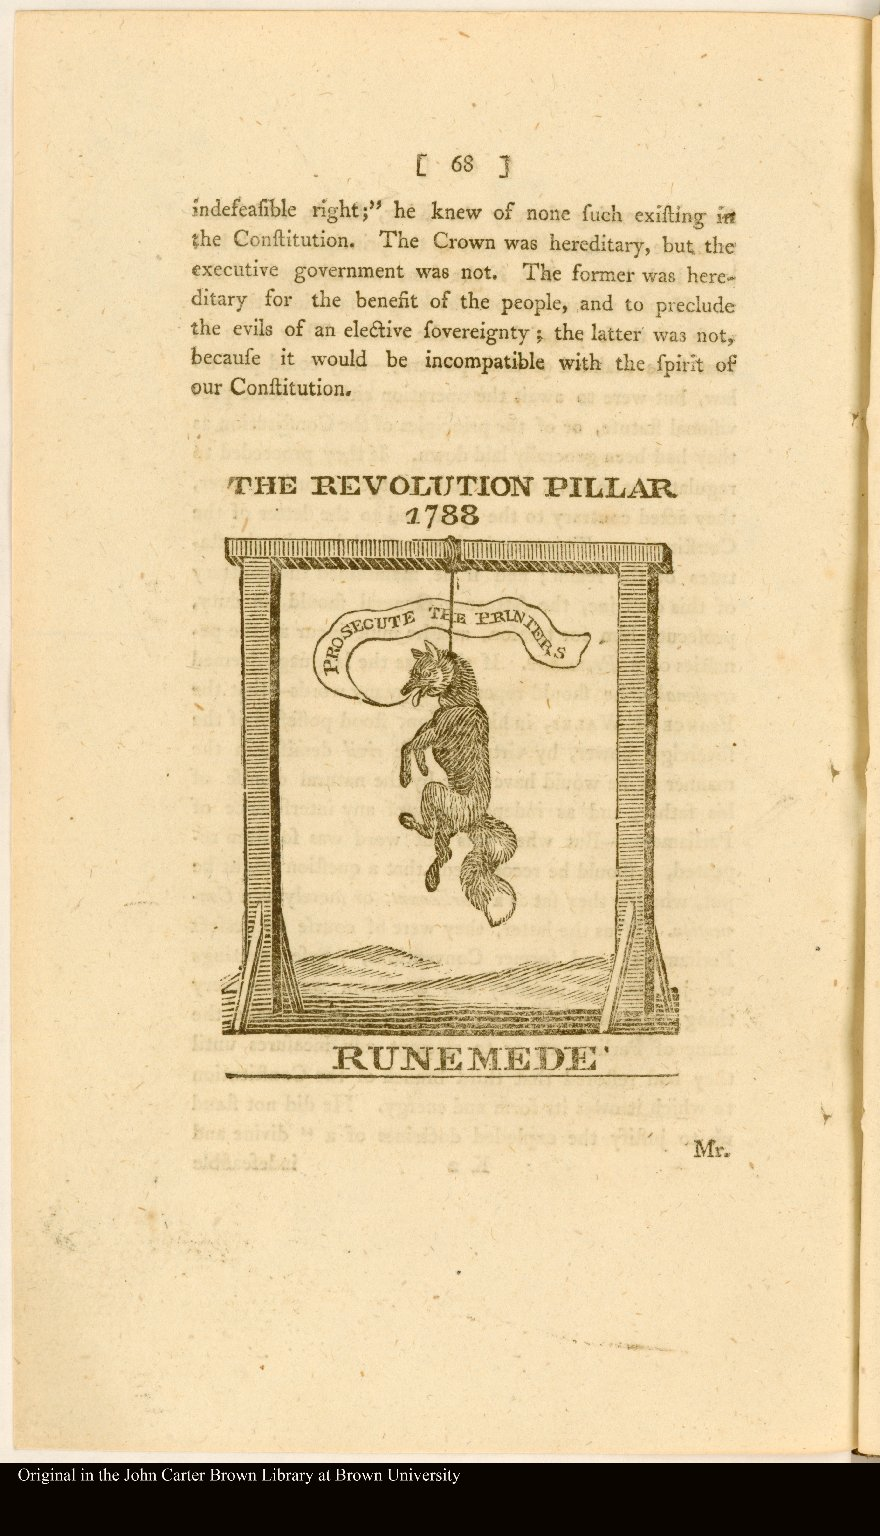 THE REVOLUTION PILLAR 1788